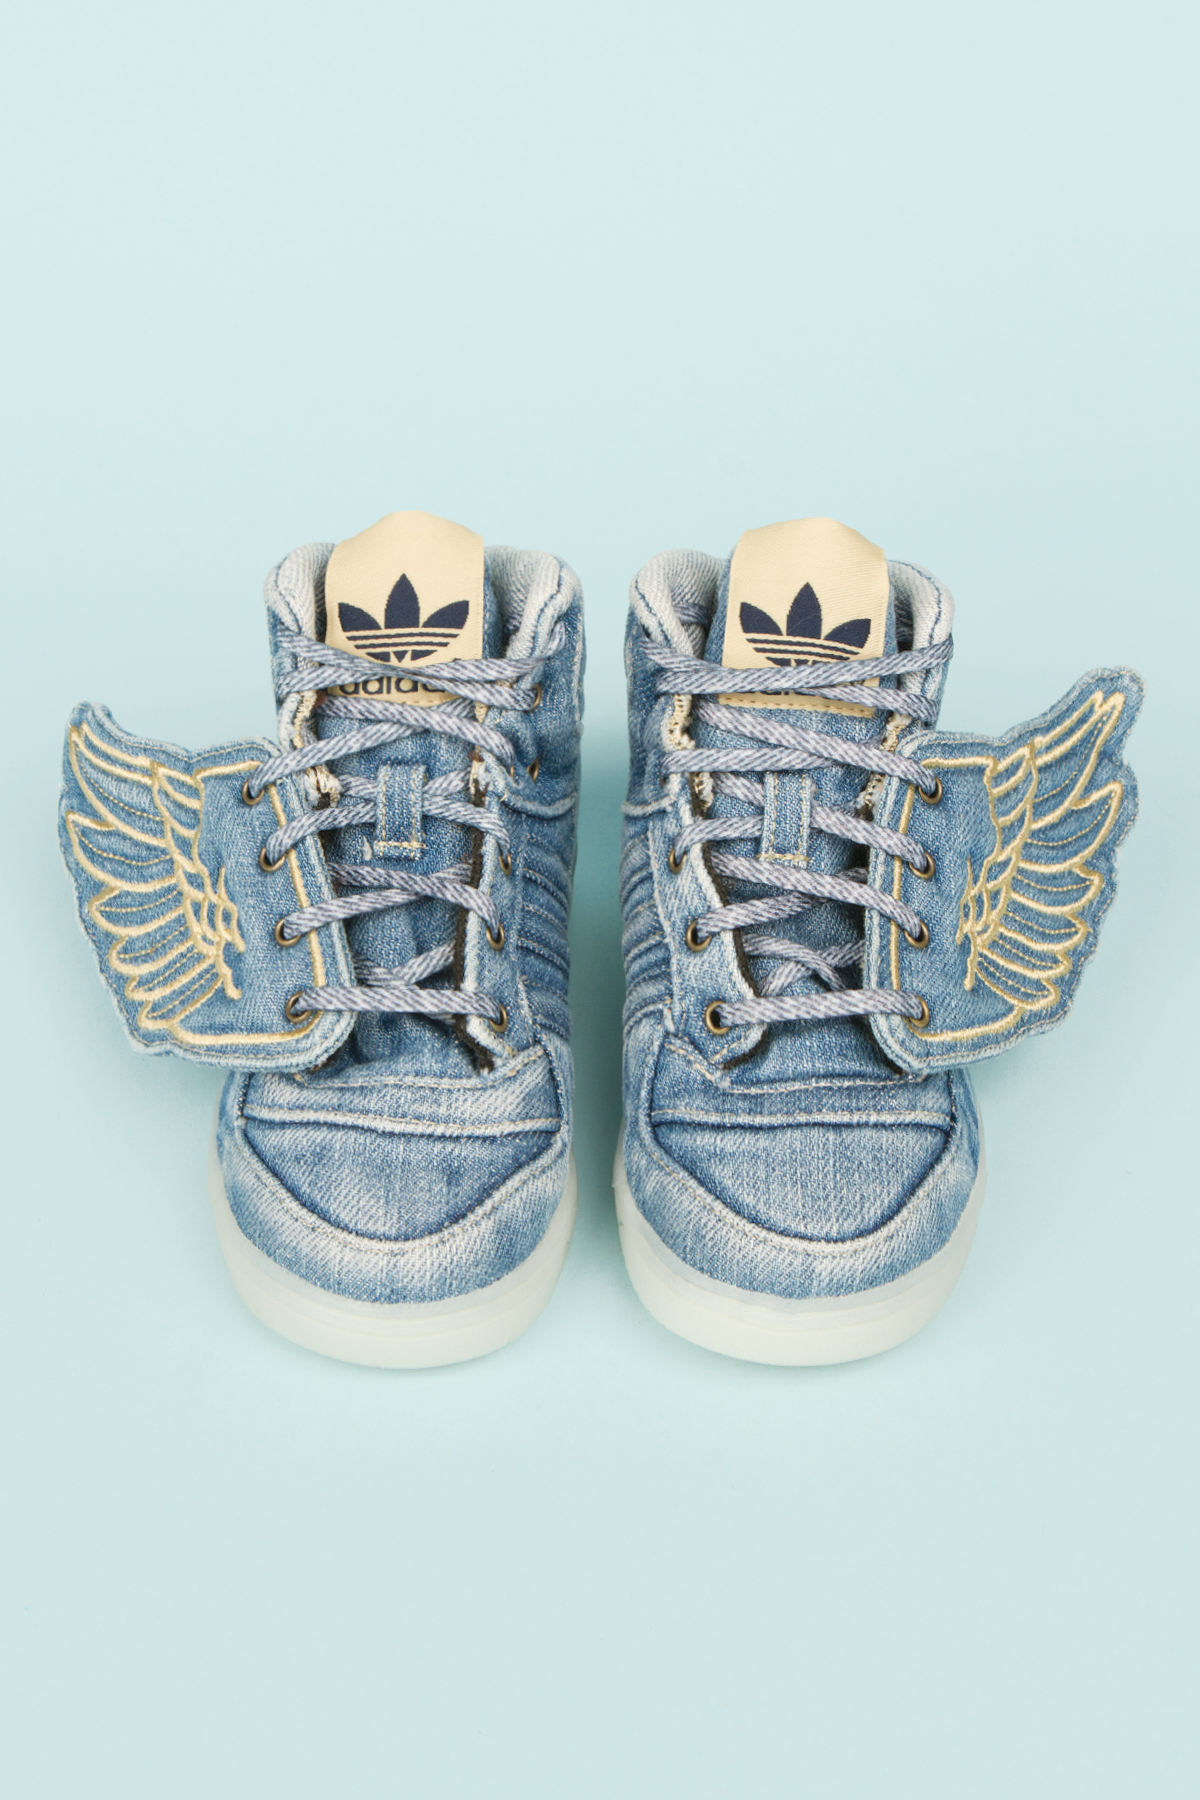 Jeremy Scott Adidas Originals Infant Denim Wings